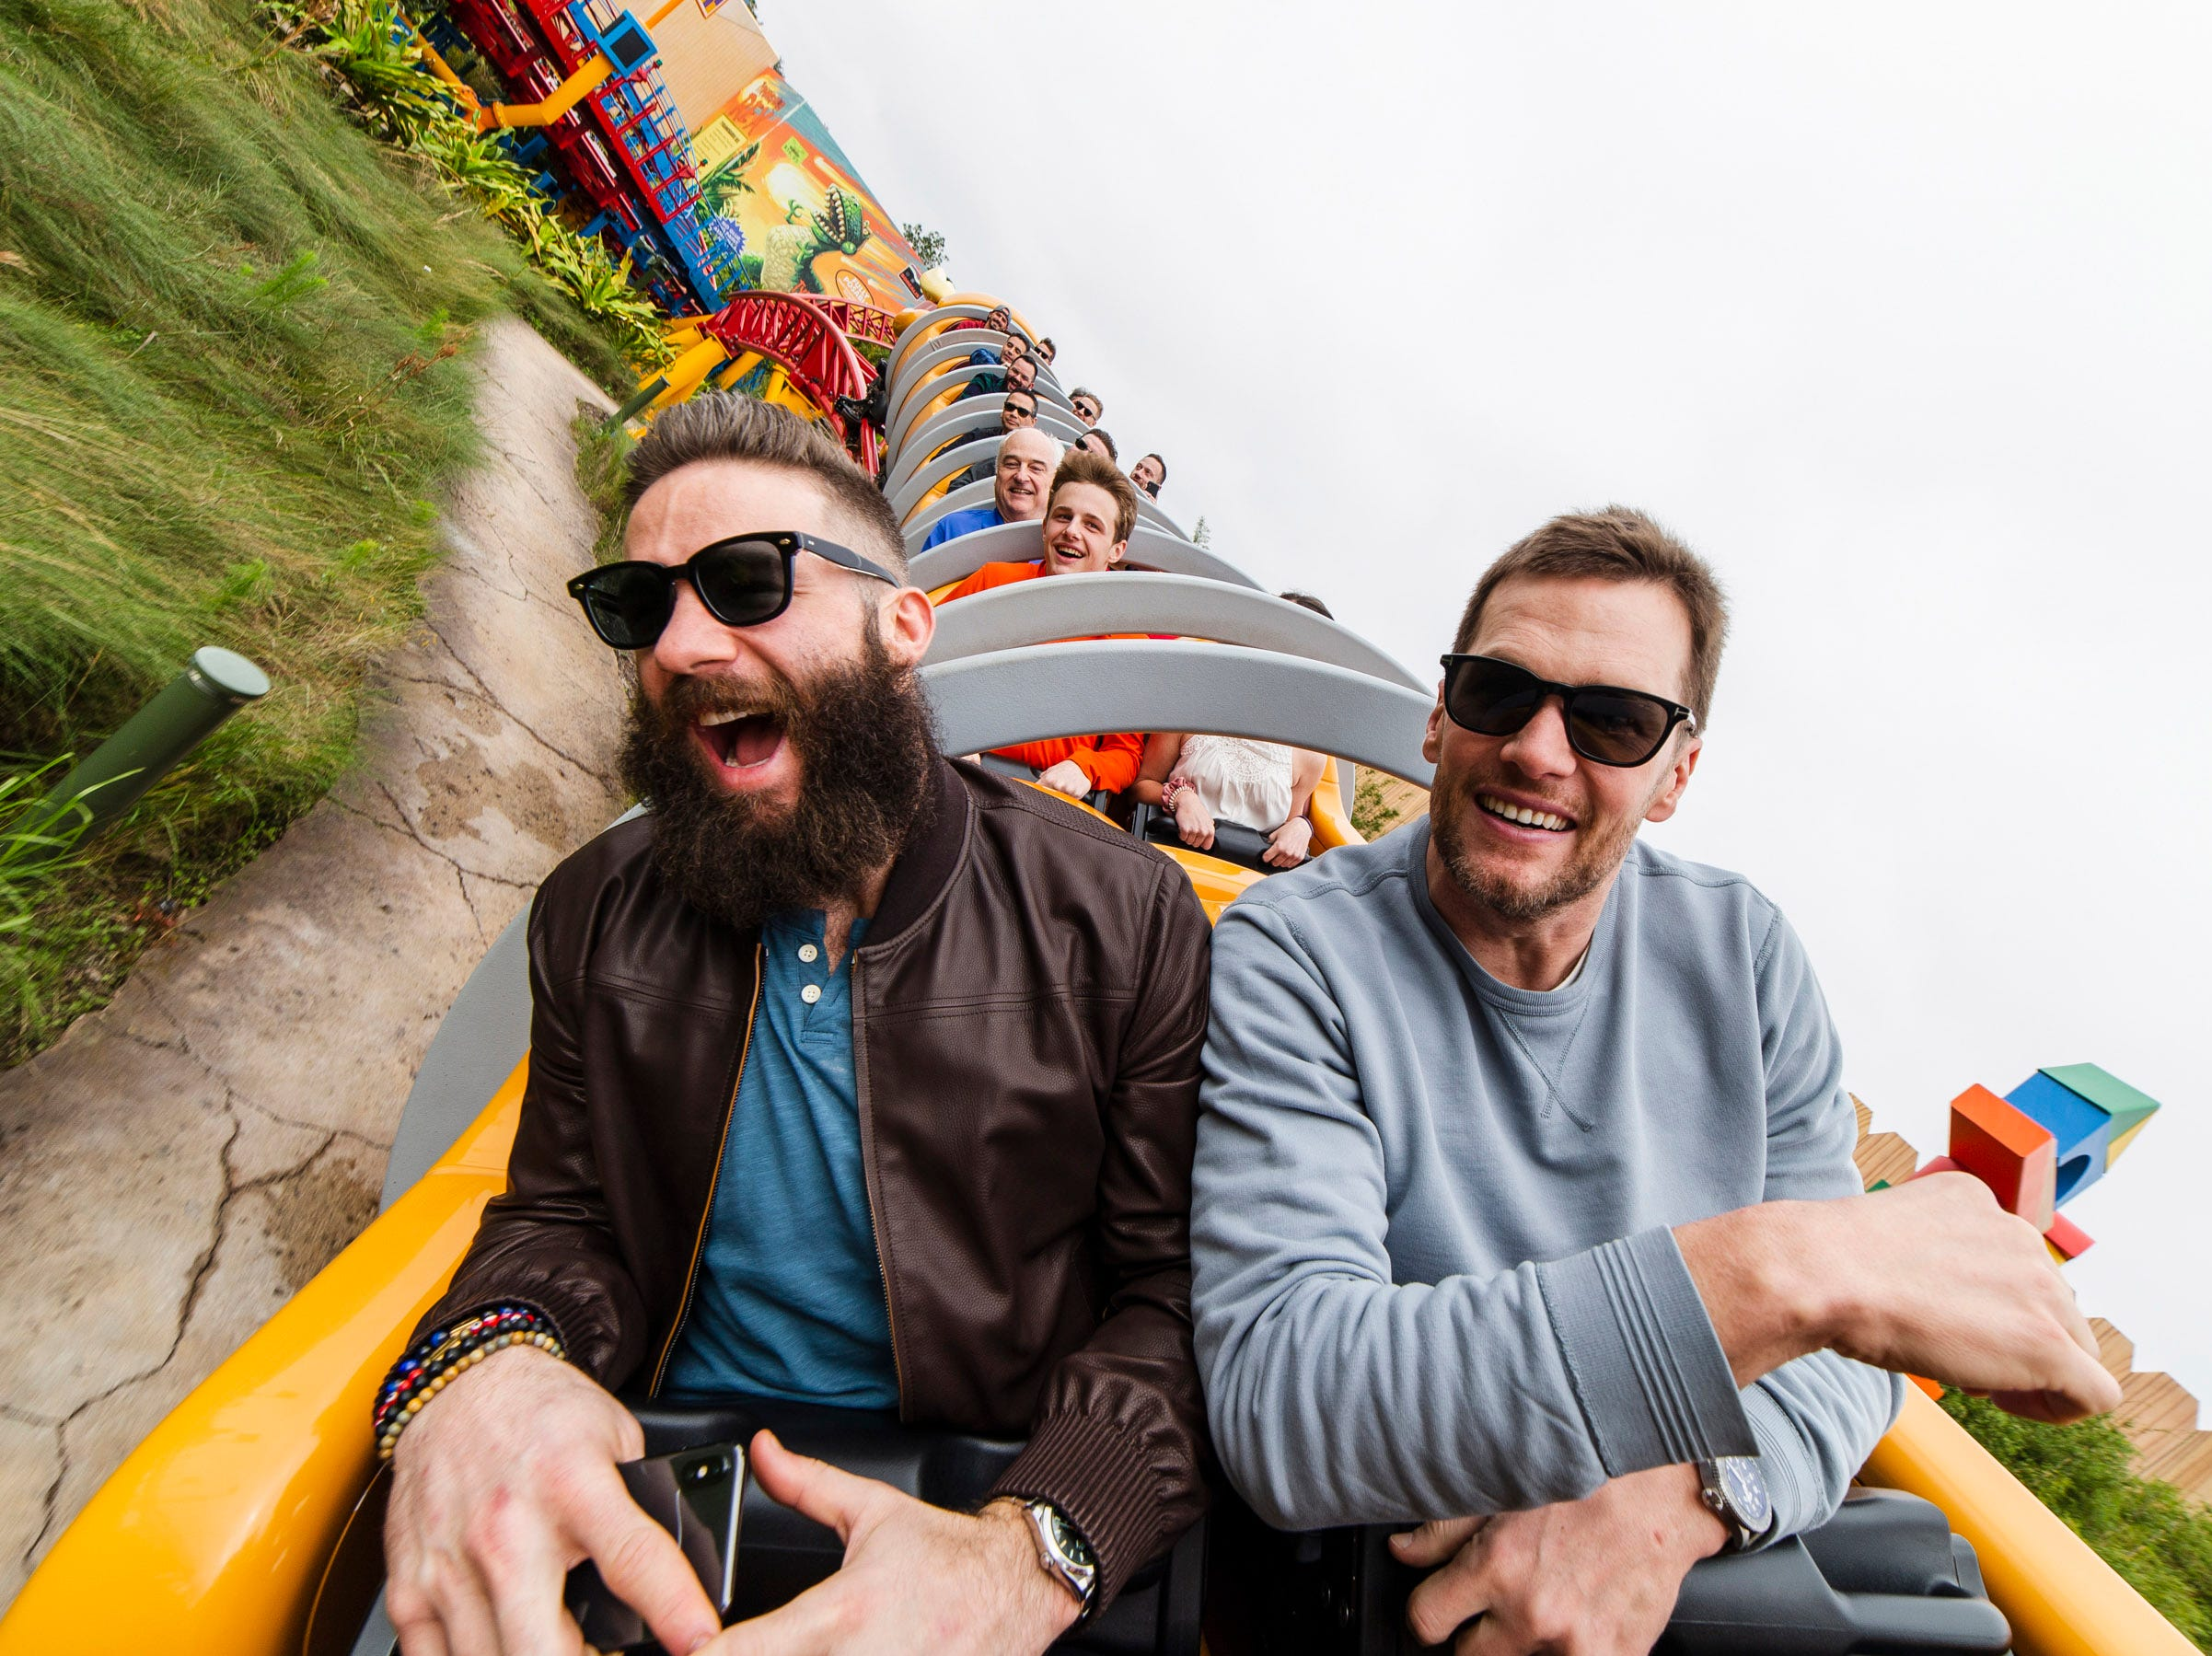 New England Patriots wide receiver Julian Edelman (left) and quarterbackTom Brady (right) celebrated their Super Bowl LIII victory Monday, Feb. 4, 2019, at Walt Disney World Resort in Lake Buena Vista, Fla. During their visit, the pair took a ride on the new Slinky Dog Dash in Toy Story Land at Disney's Hollywood Studios.